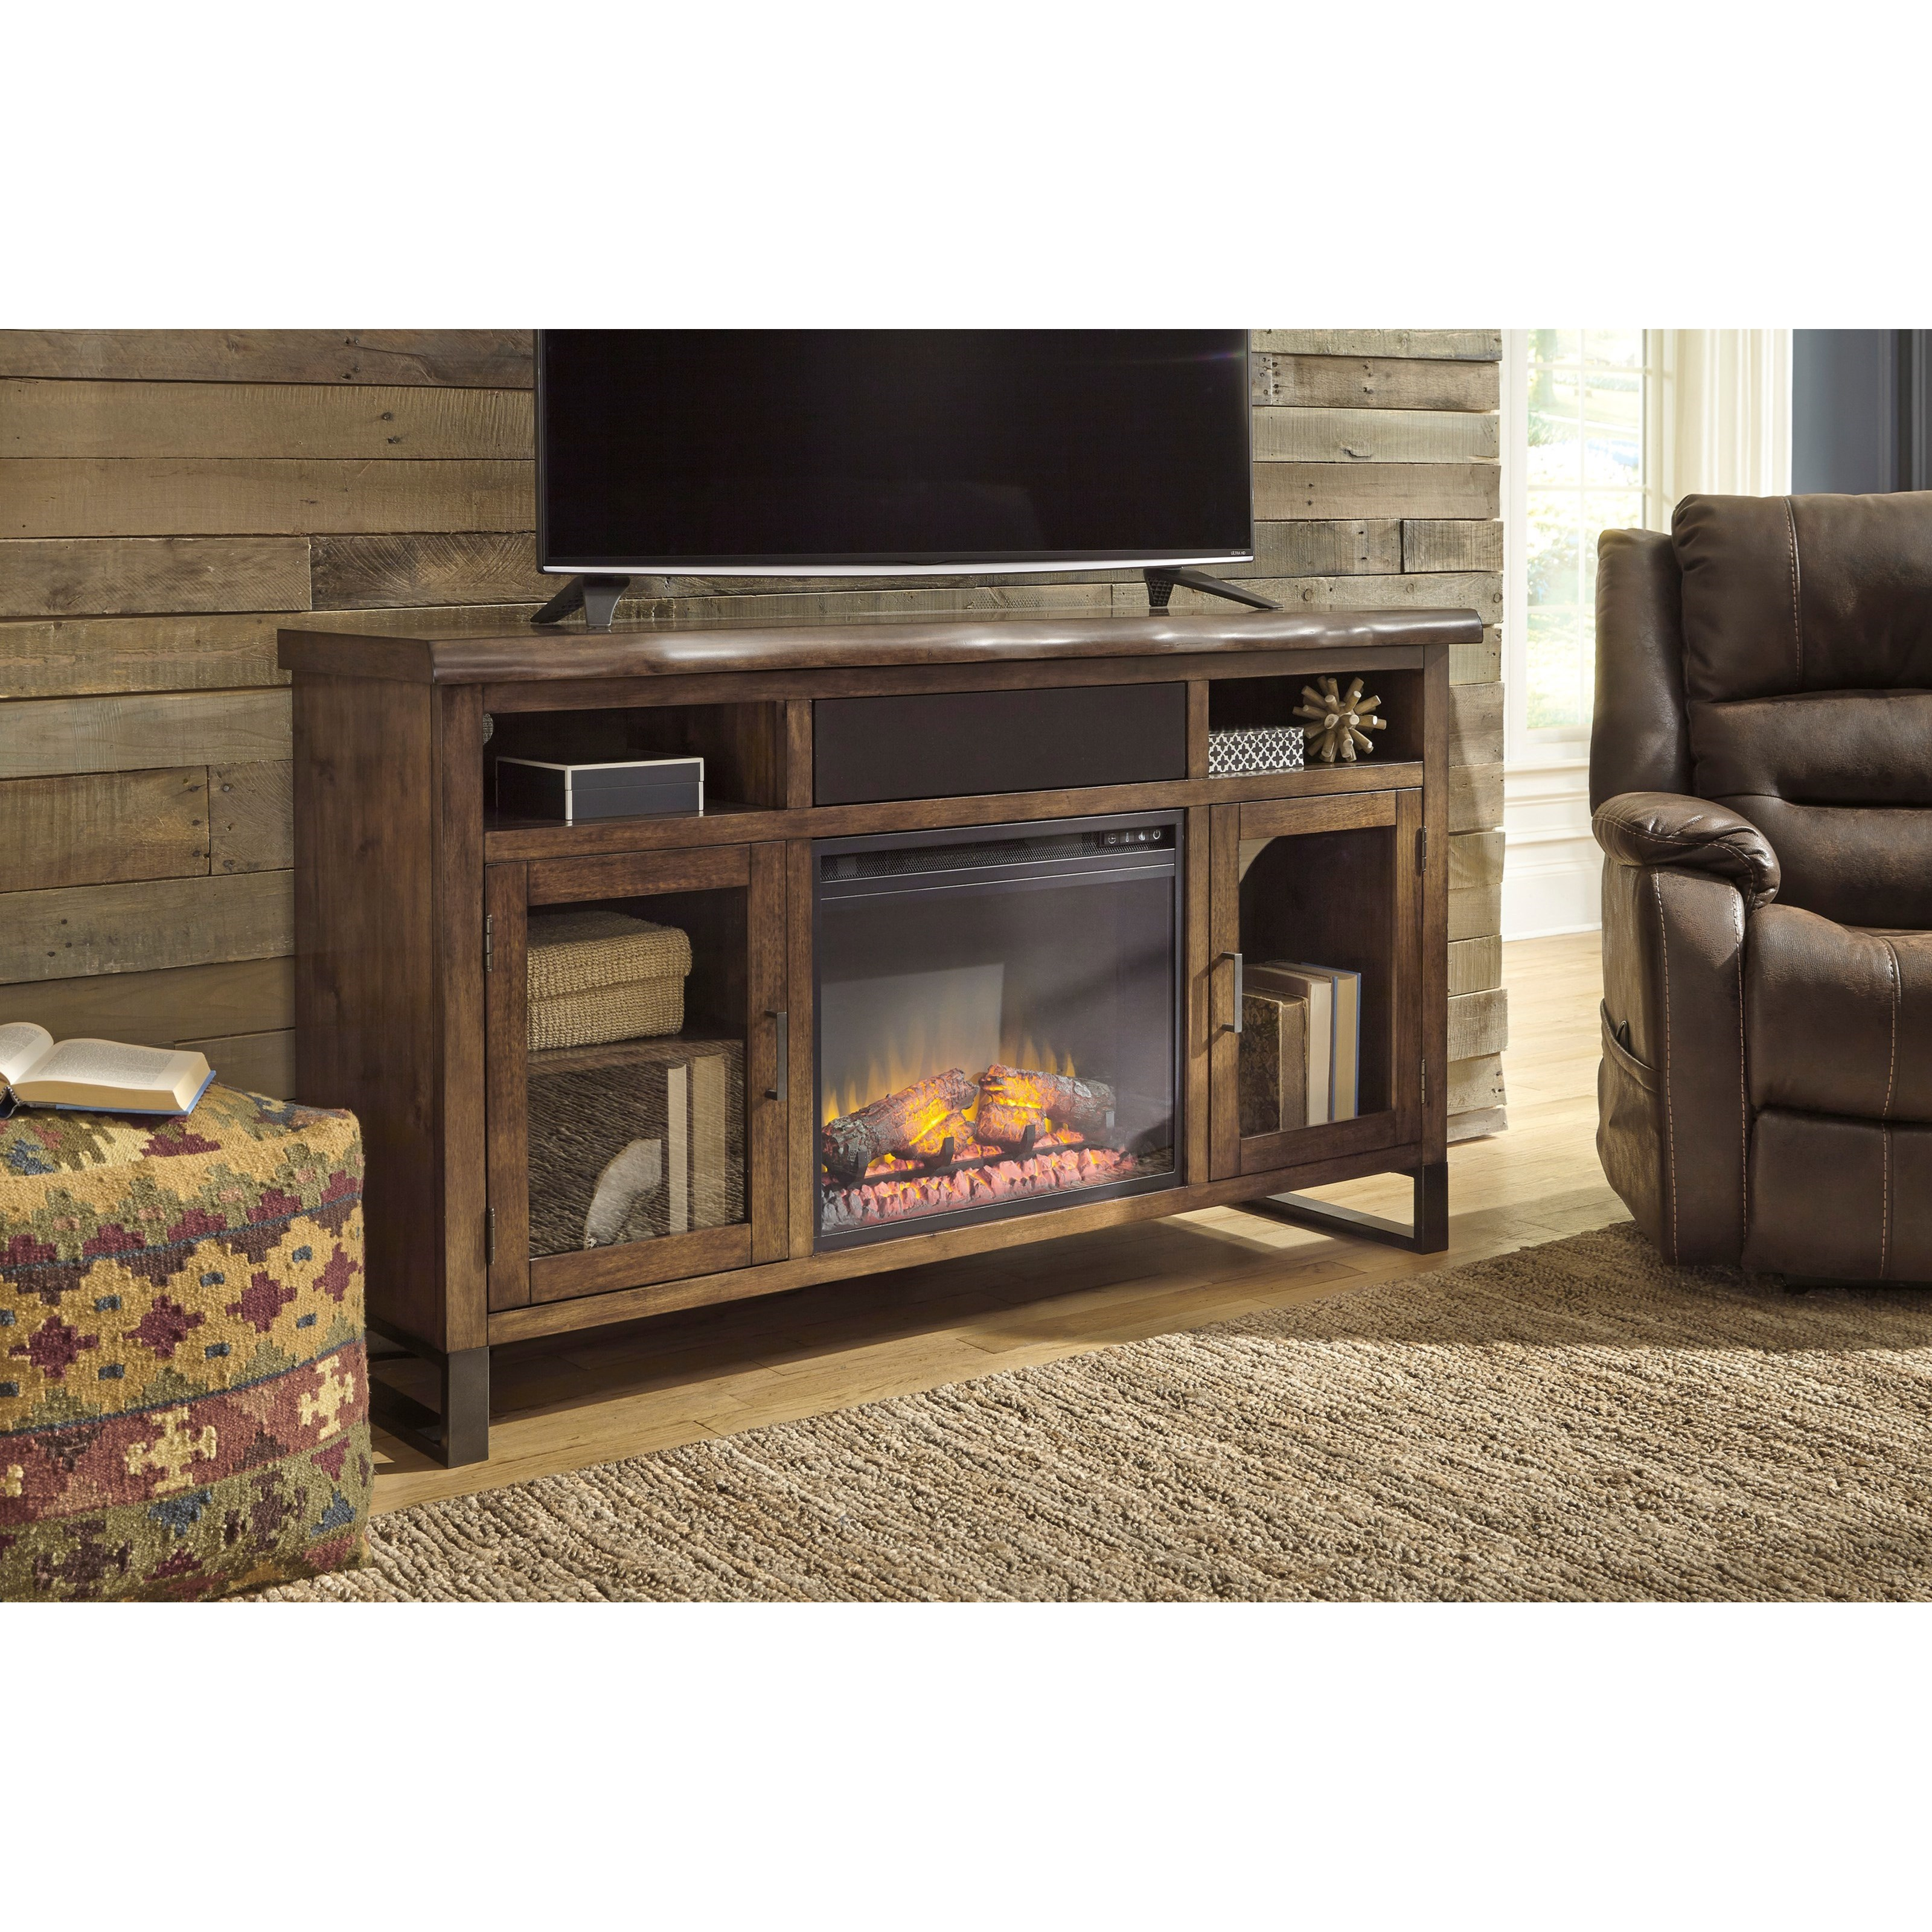 Large TV Stand w/ Fireplace Insert, Bluetooth Speaker, & Faux Live ...